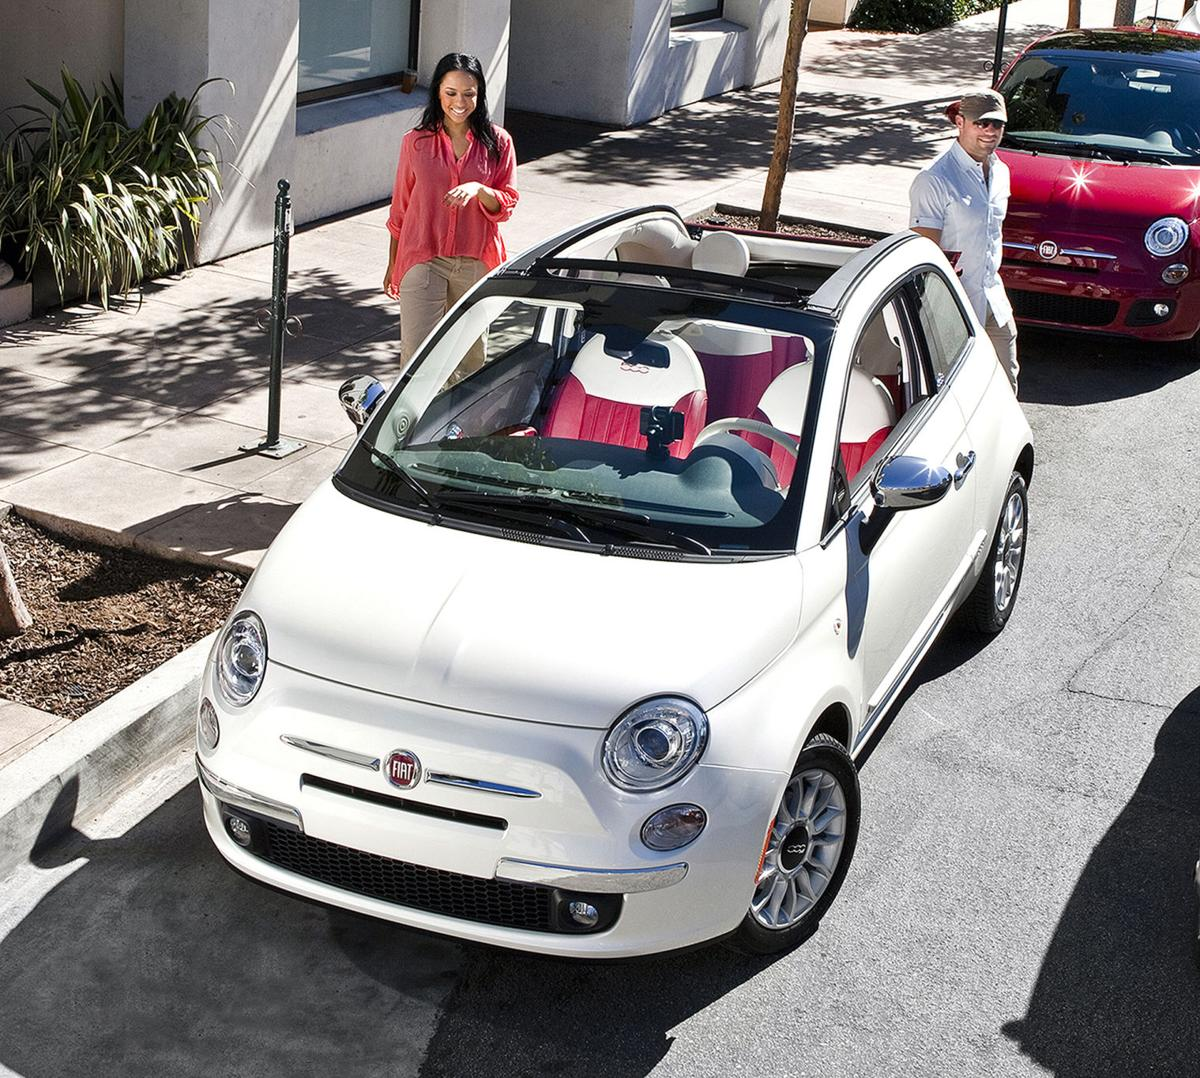 2019 Fiat 500: Upgraded Power In A Fun-to-drive Car